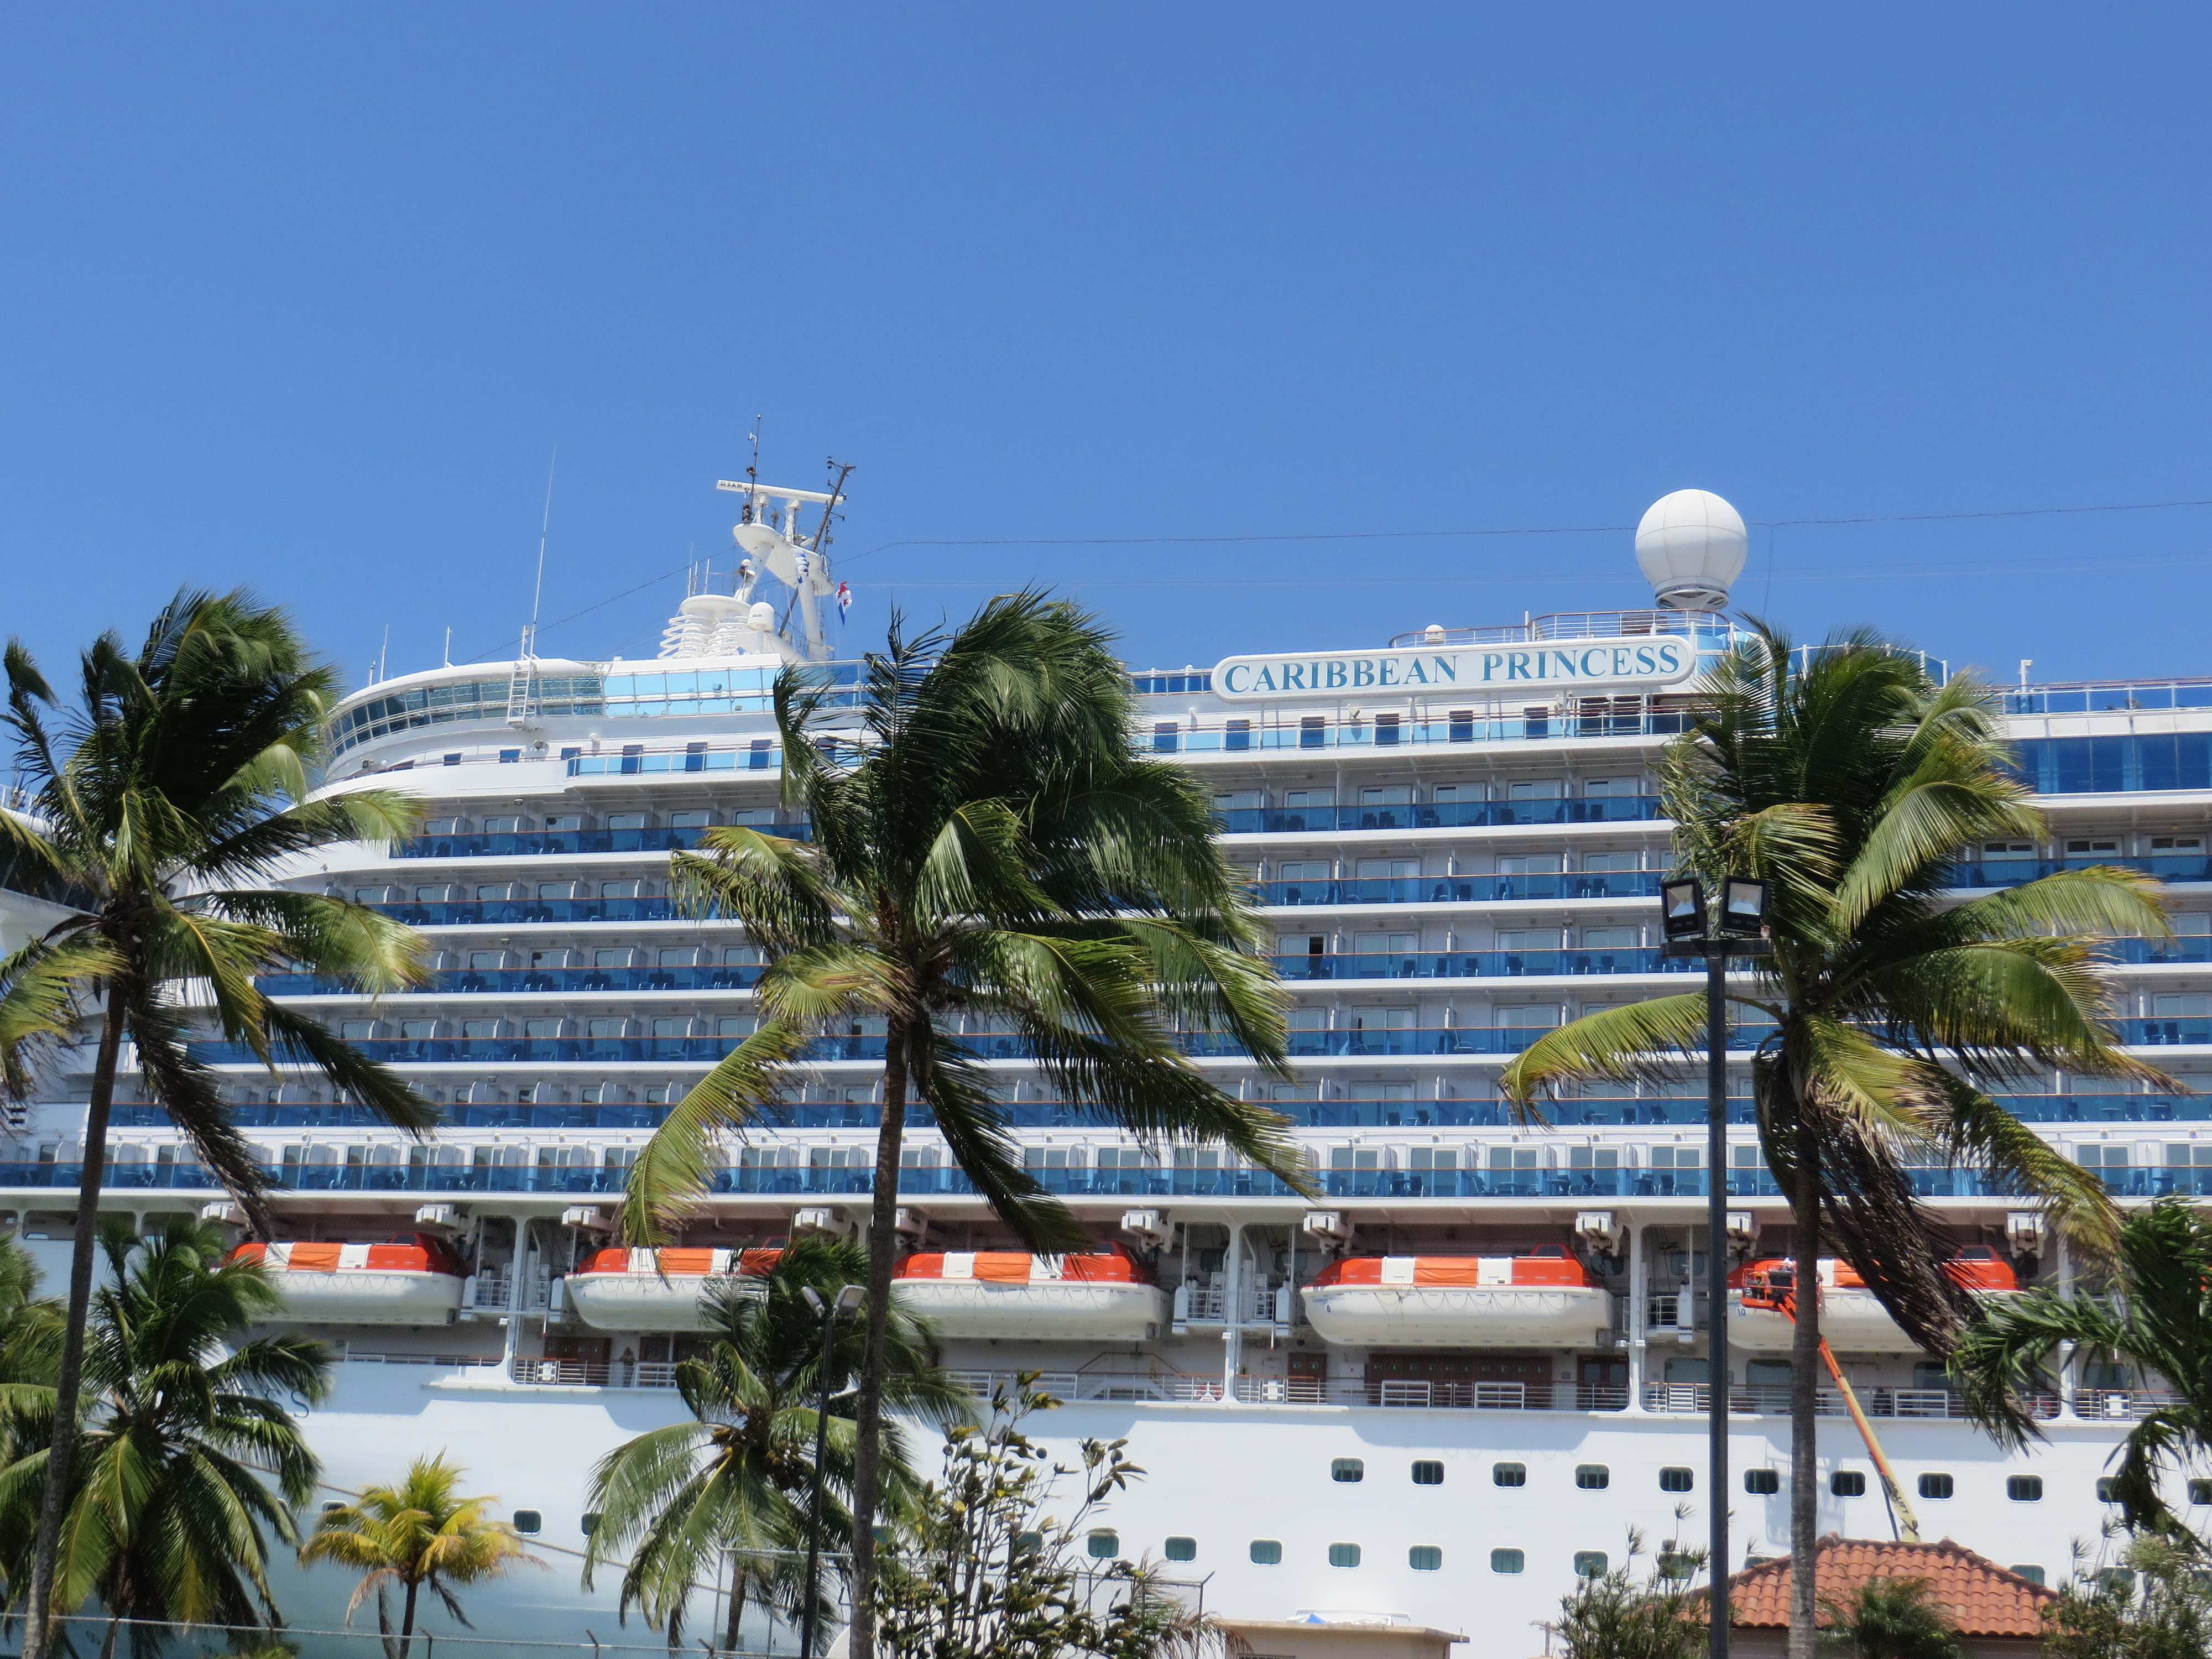 CARIBBEAN PRINCESS - TripAdvisor: Read Reviews, Compare ...